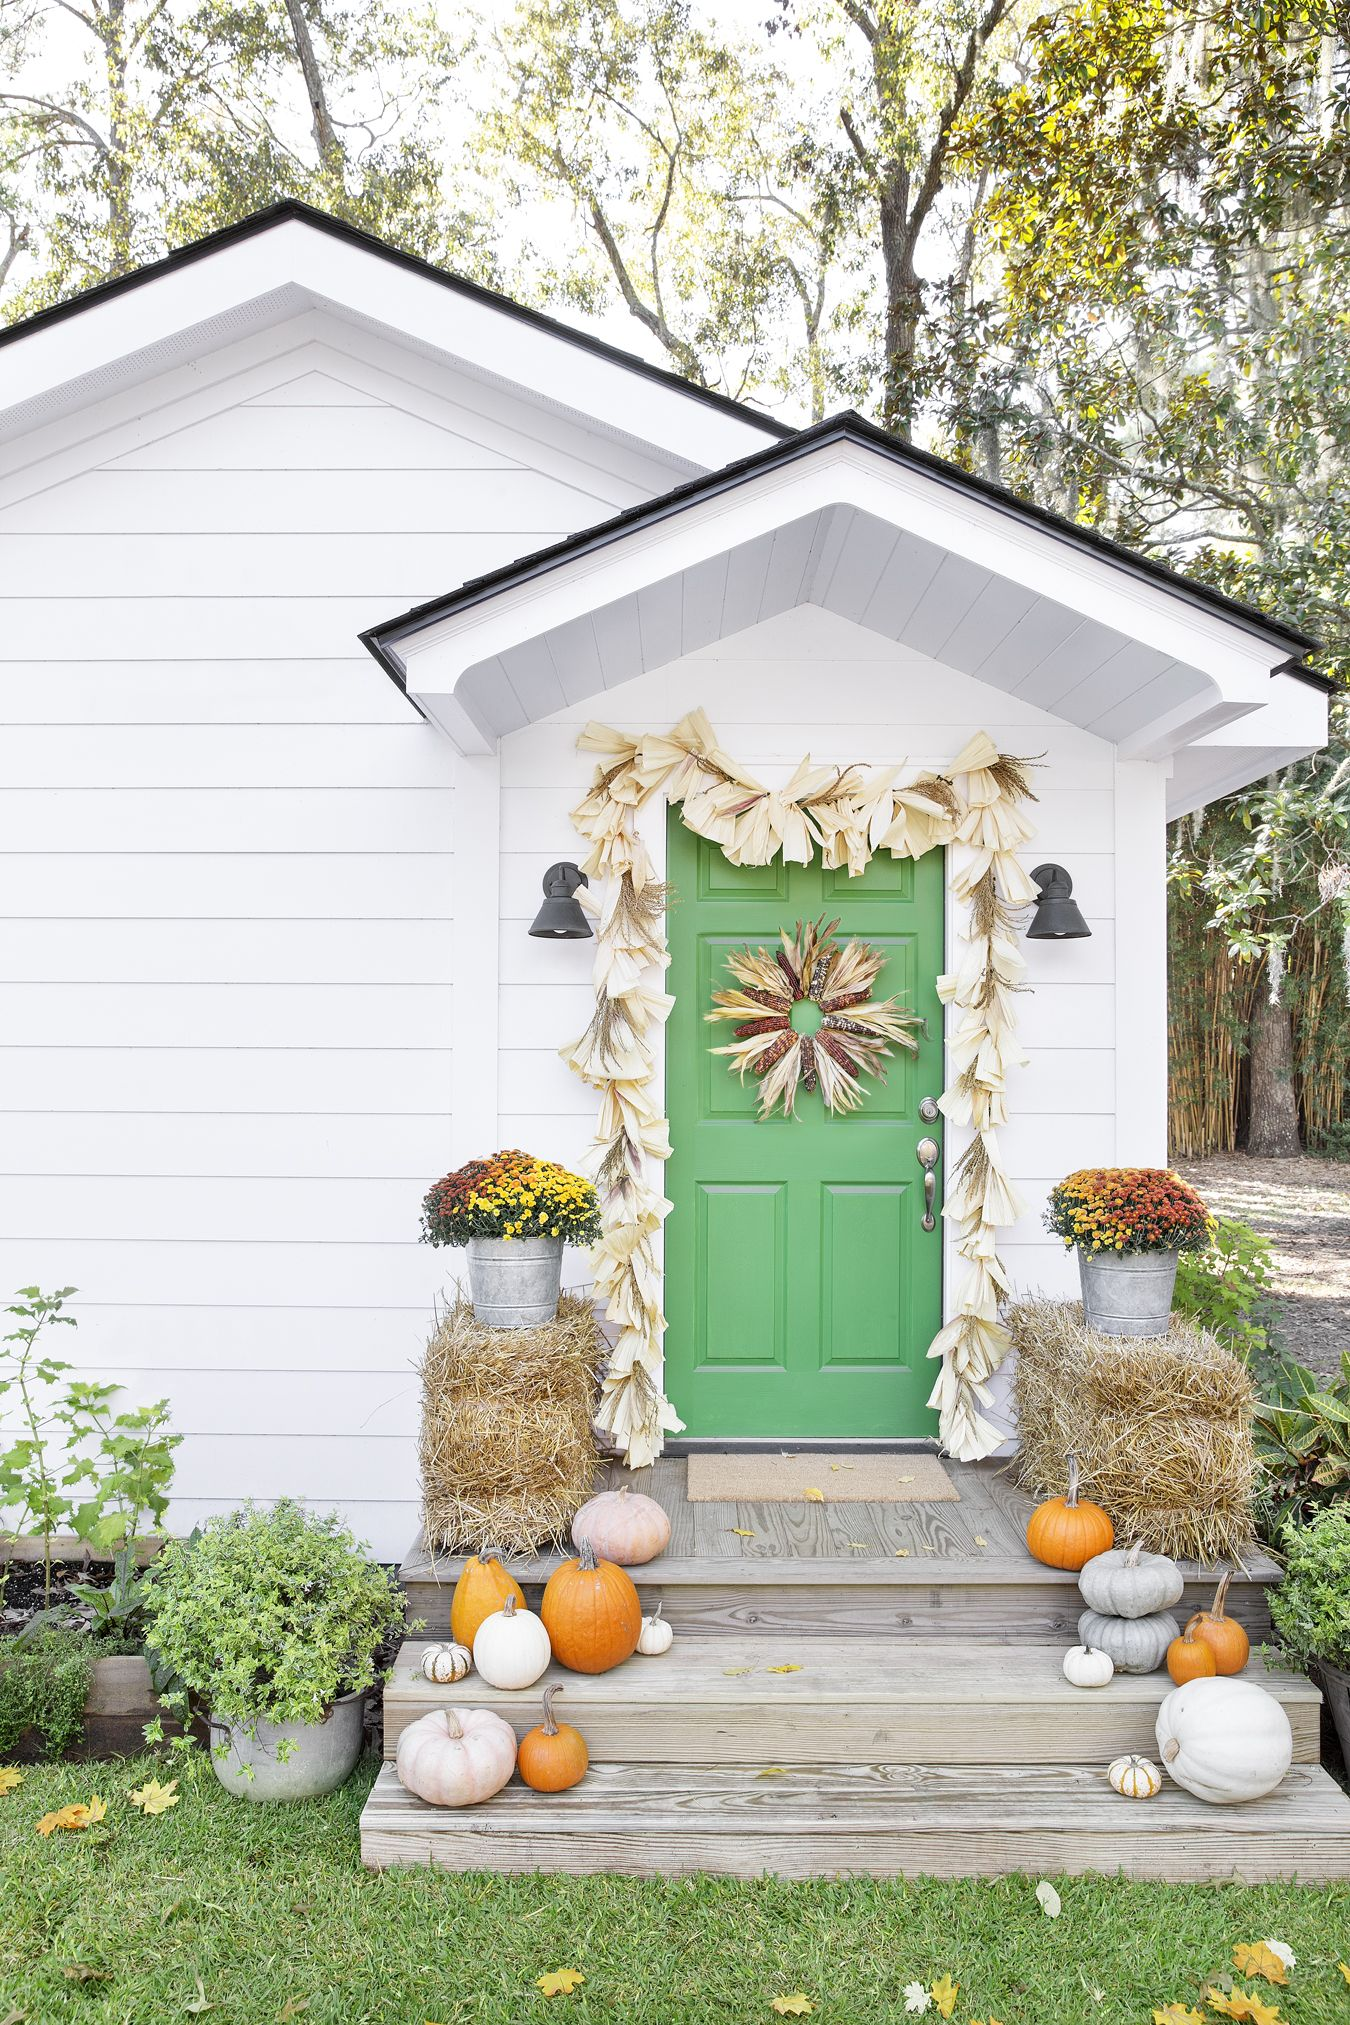 40 Fall Porch Decorating Ideas - Ways to Decorate Your Porch for Fall